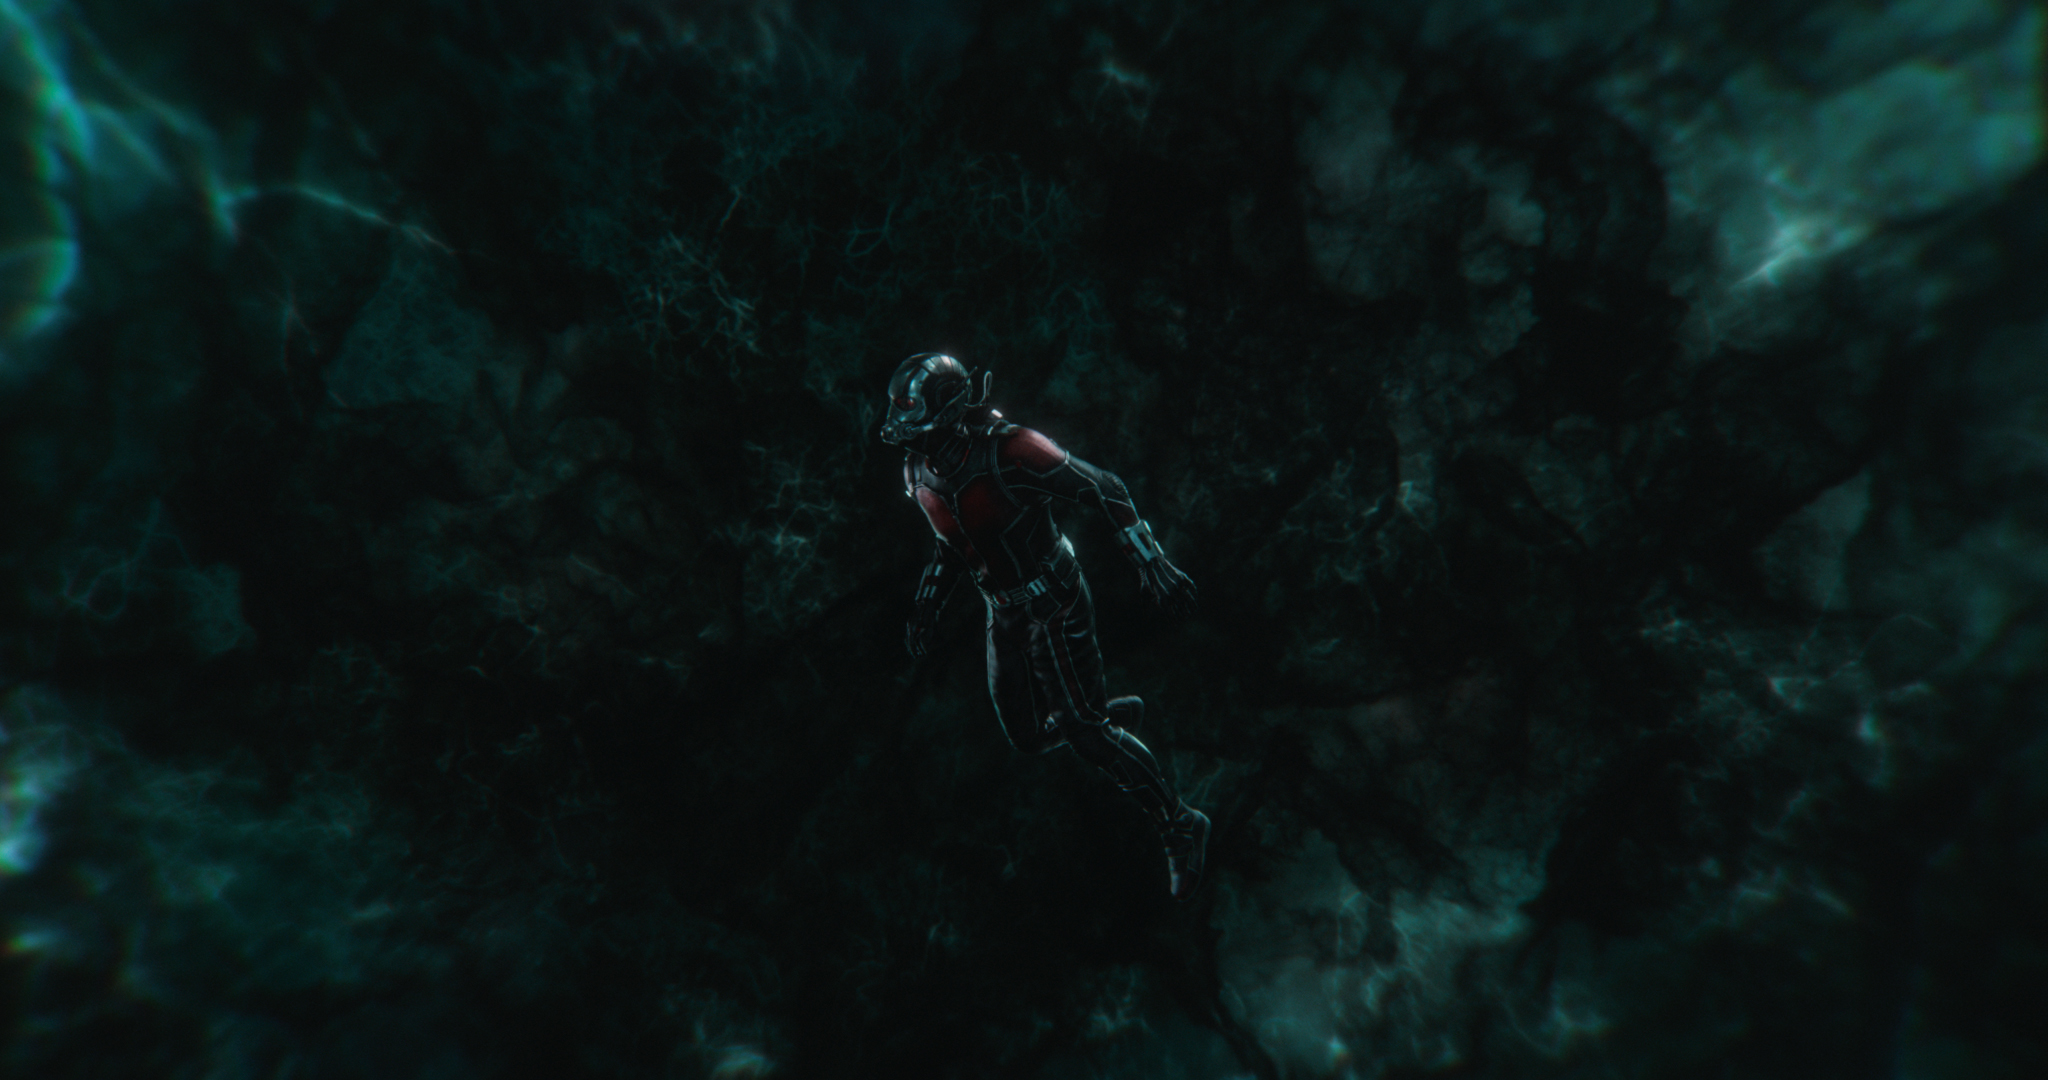 Ant-Man/Scott Lang (Paul Rudd) in the Quantum Realm in Ant-Man and the Wasp